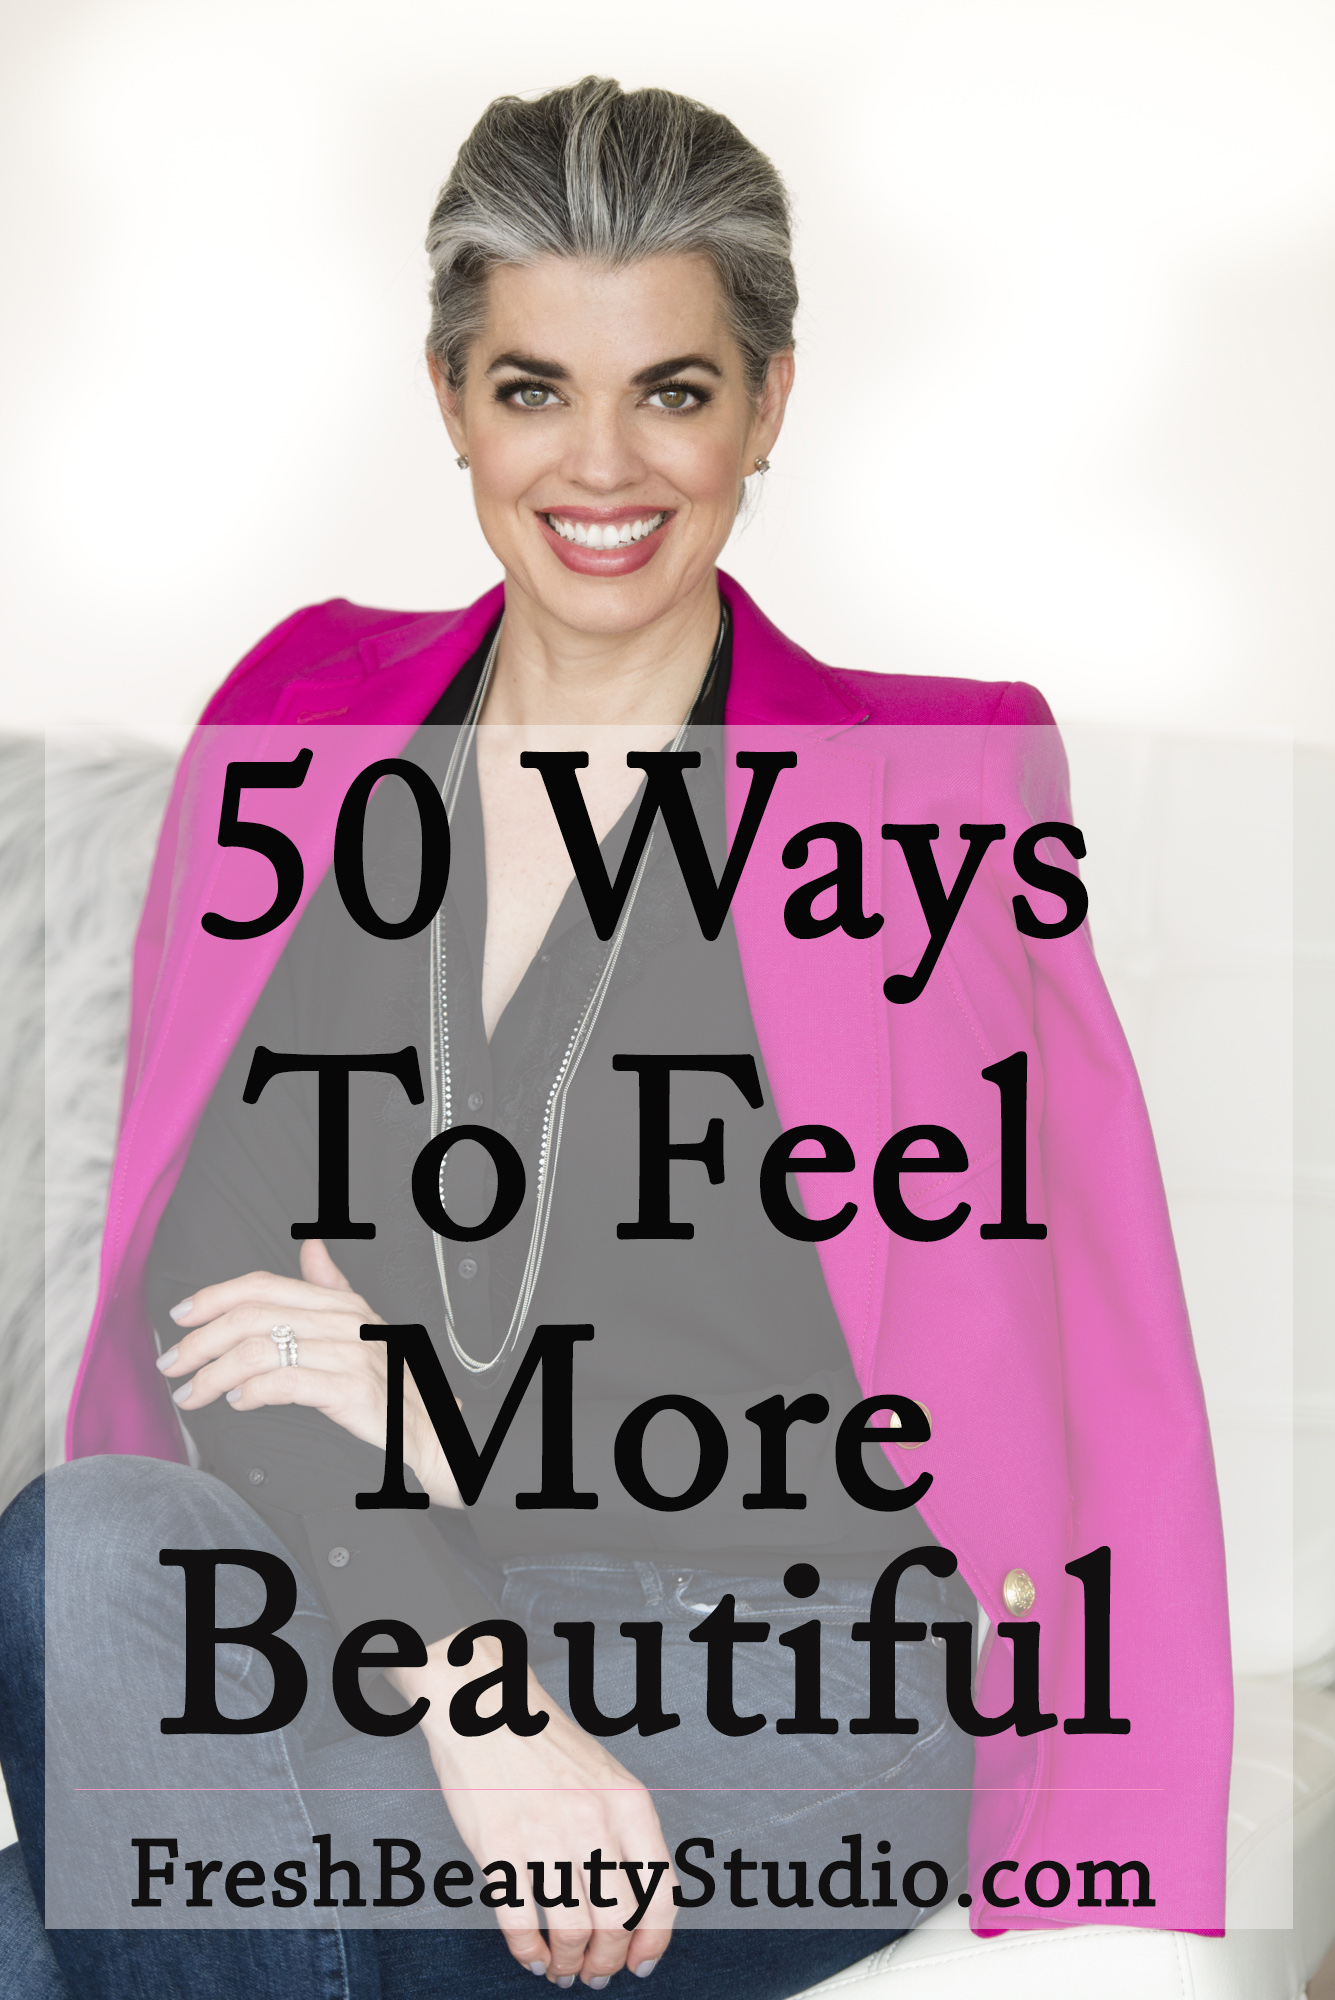 50 Ways To Feel More Beautiful